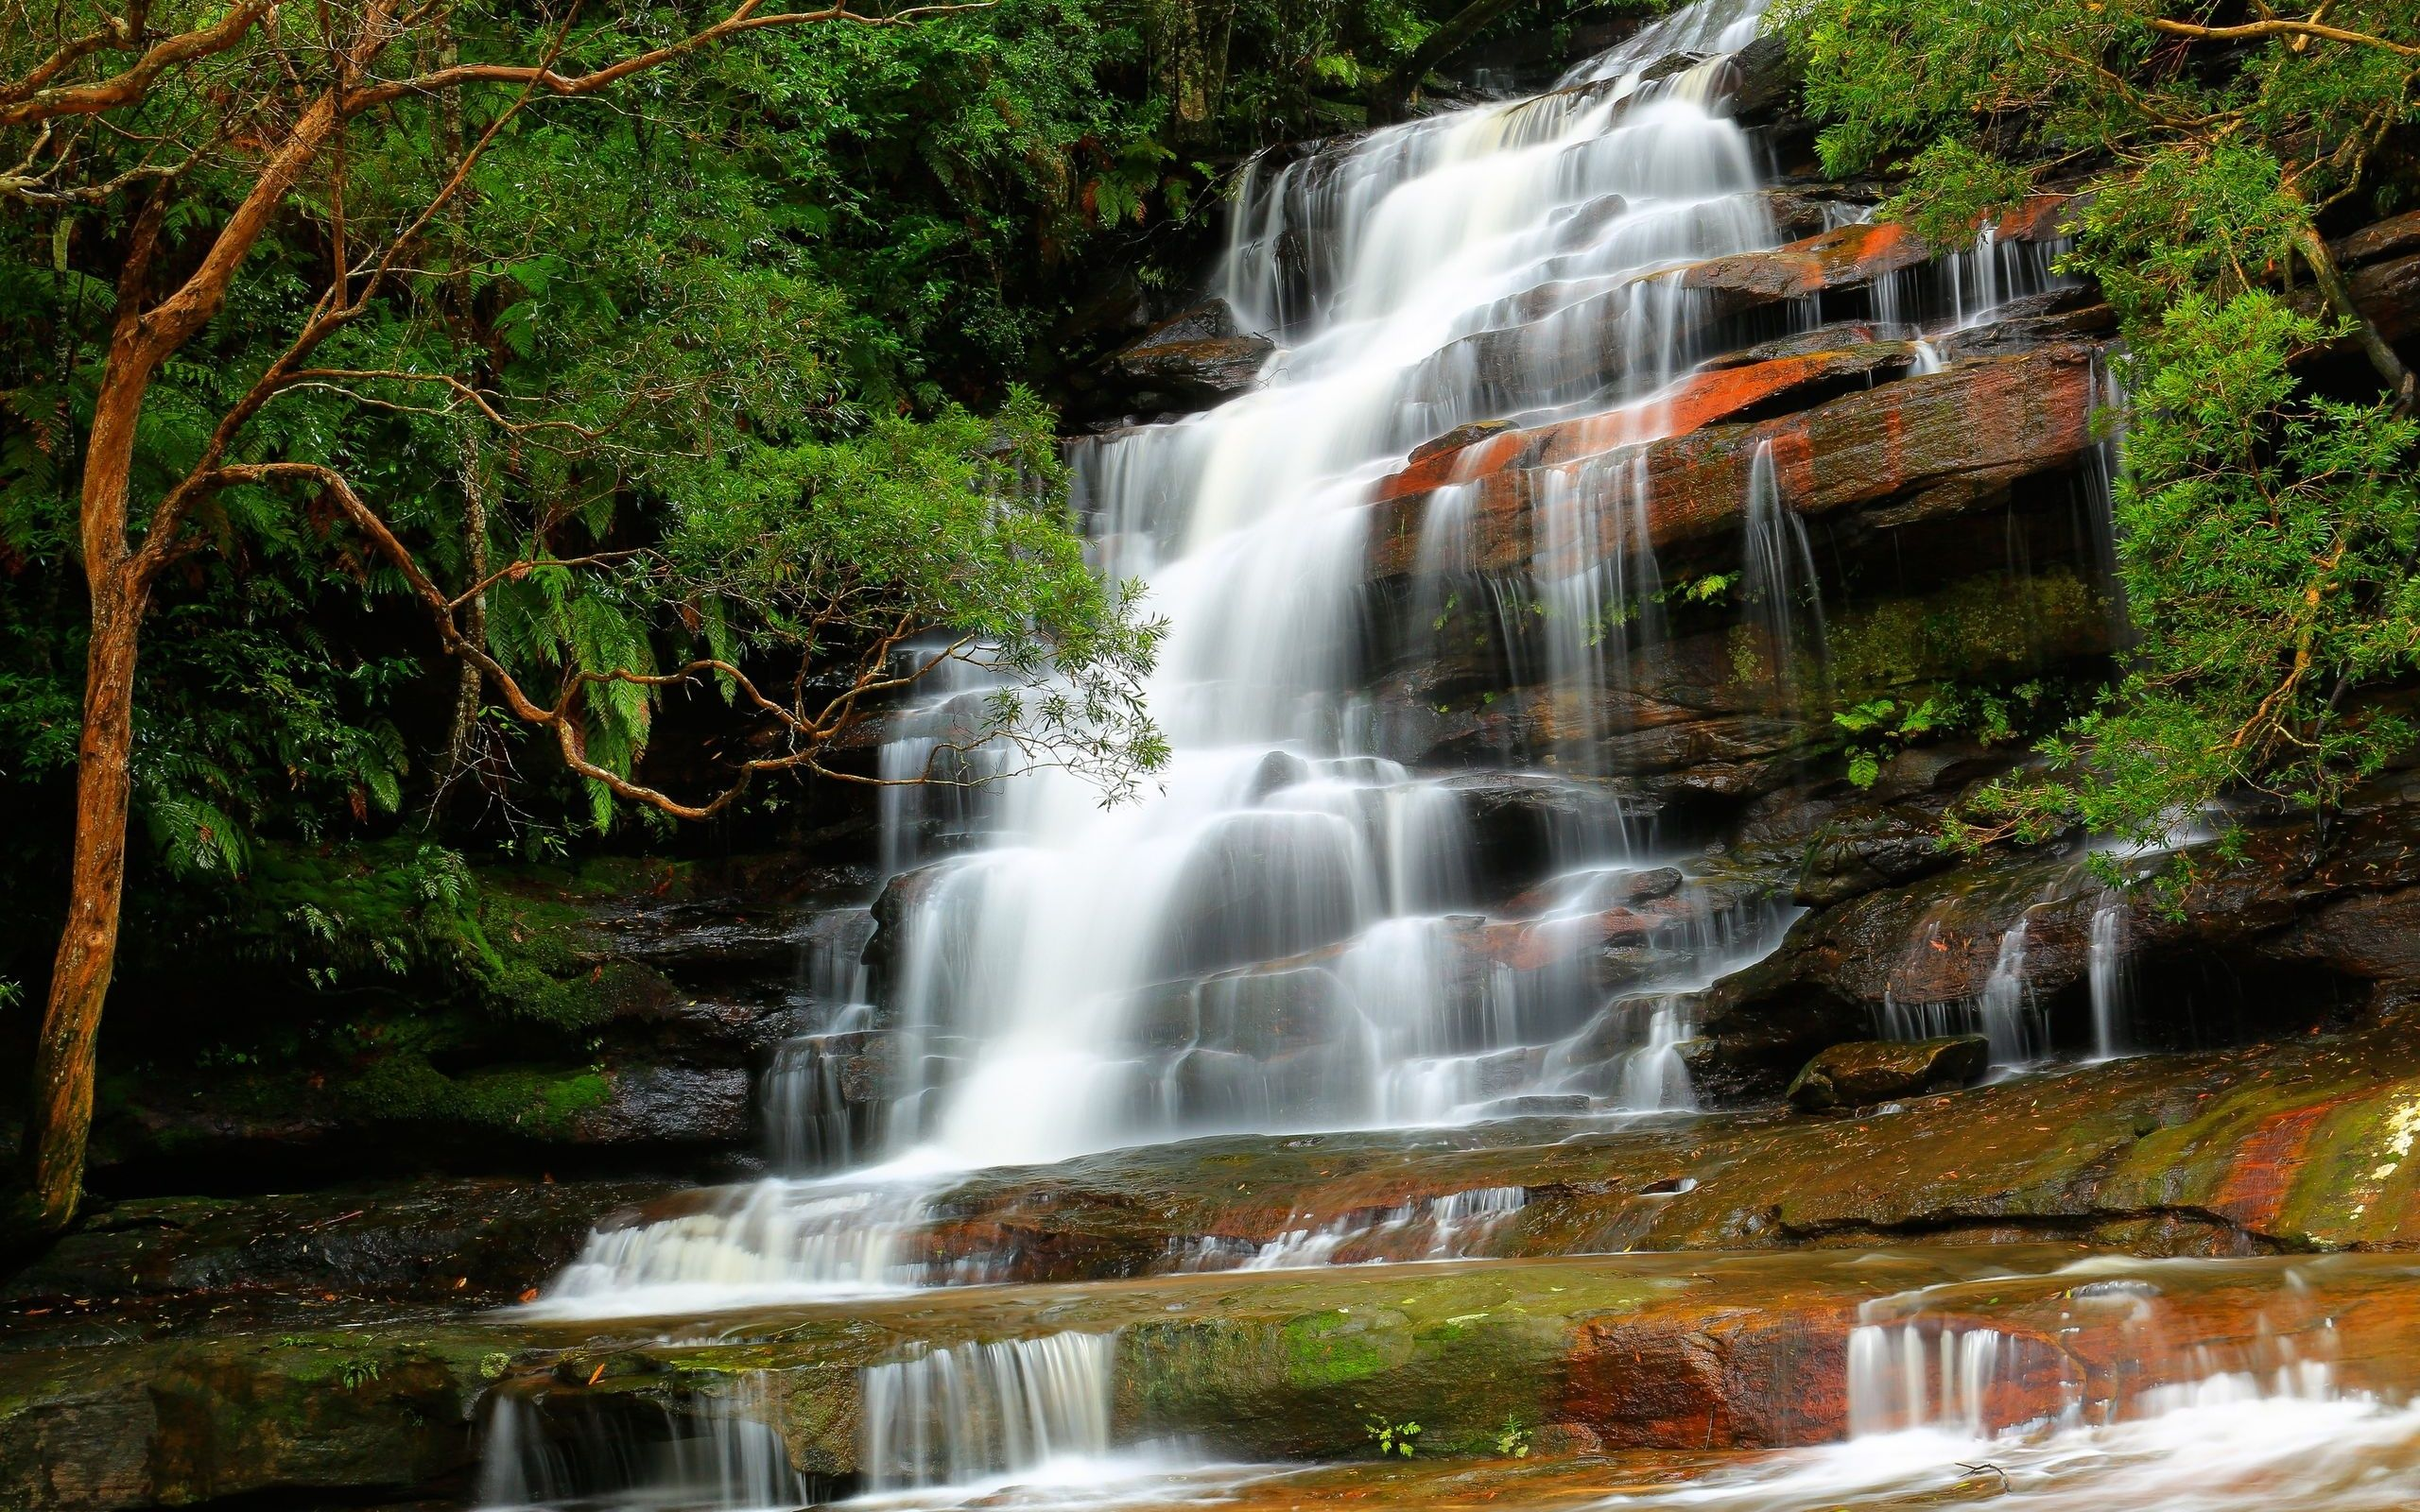 #Cool #WaterFall #Windows8 #Wallpaper